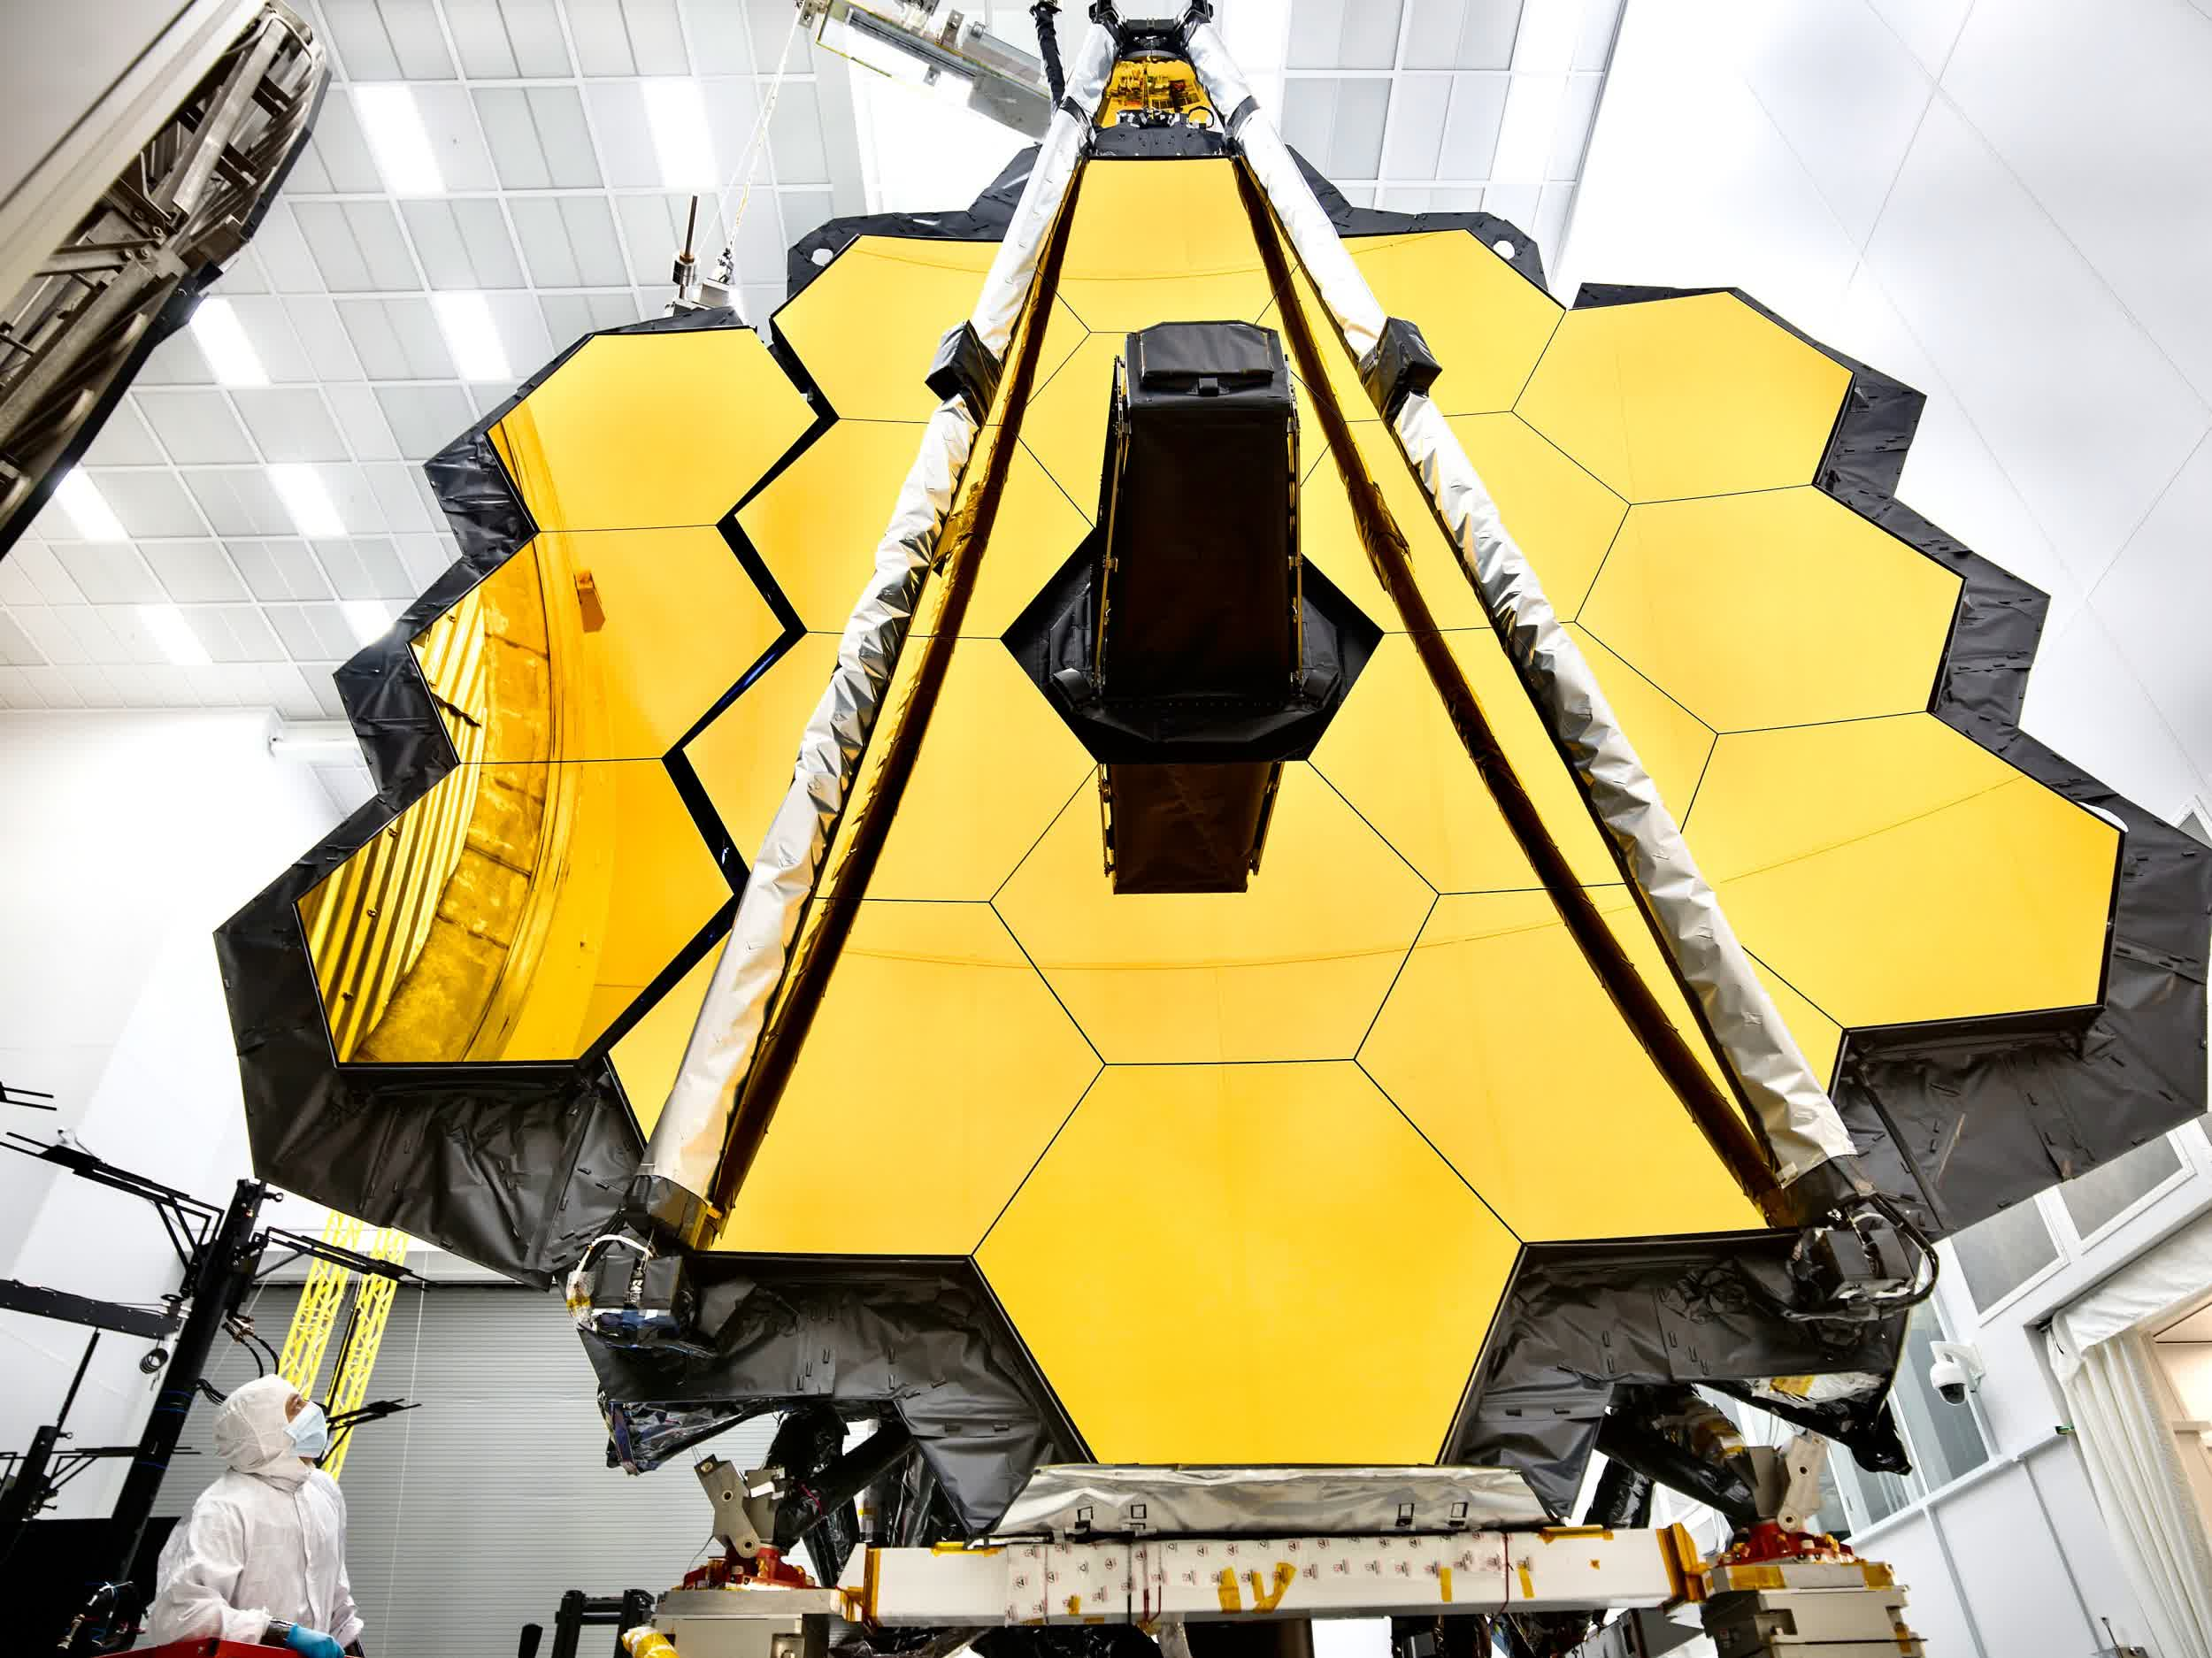 NASA sets a new launch date of December 18 for the James Webb Space Telescope